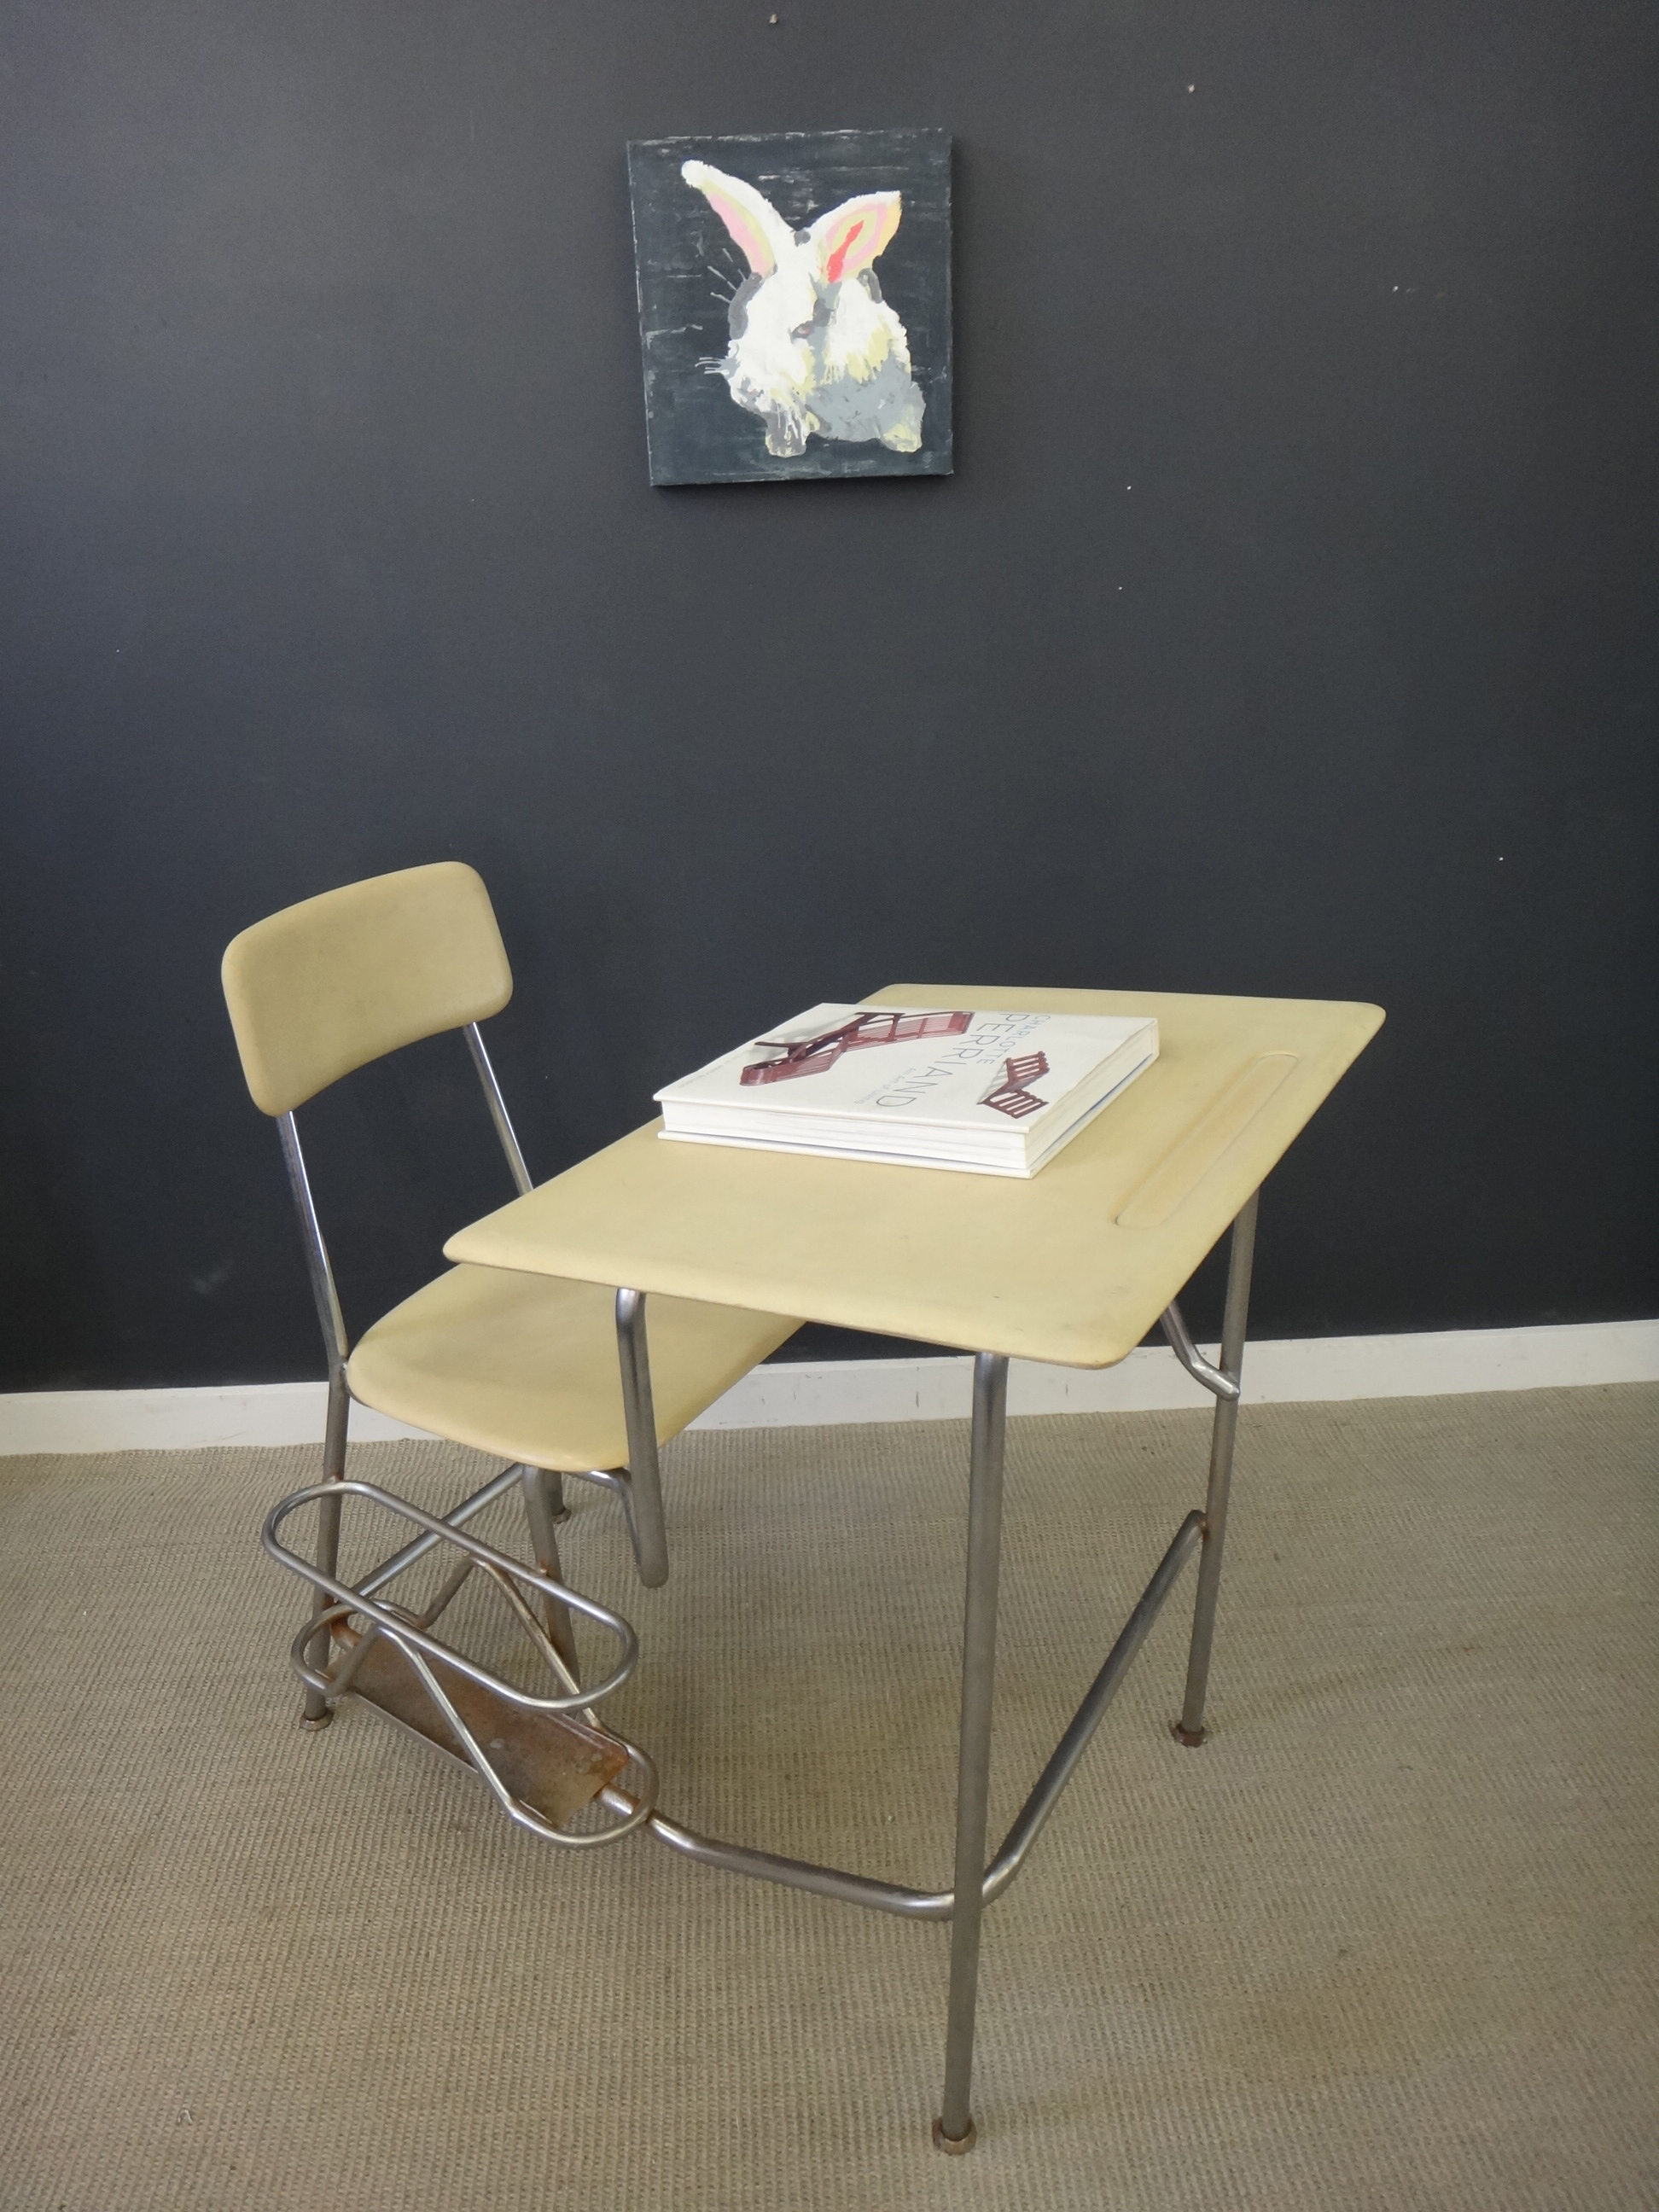 ... Vintage Heywood Wakefield School Desk/Chair Combo